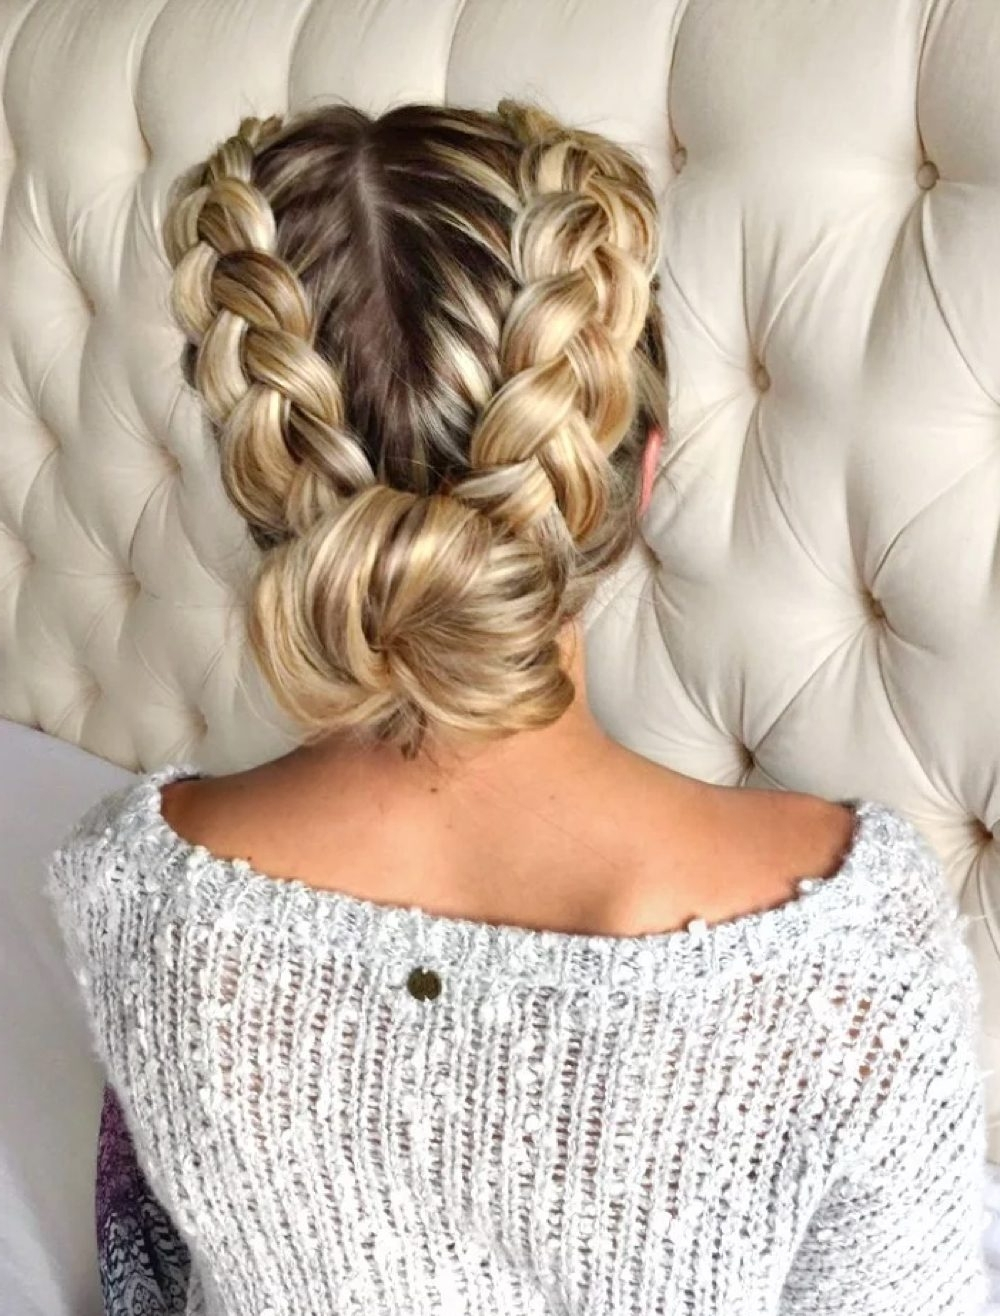 Latest French Braid Updo Hairstyles Intended For 28 Gorgeous Braided Updo Ideas For (View 3 of 15)